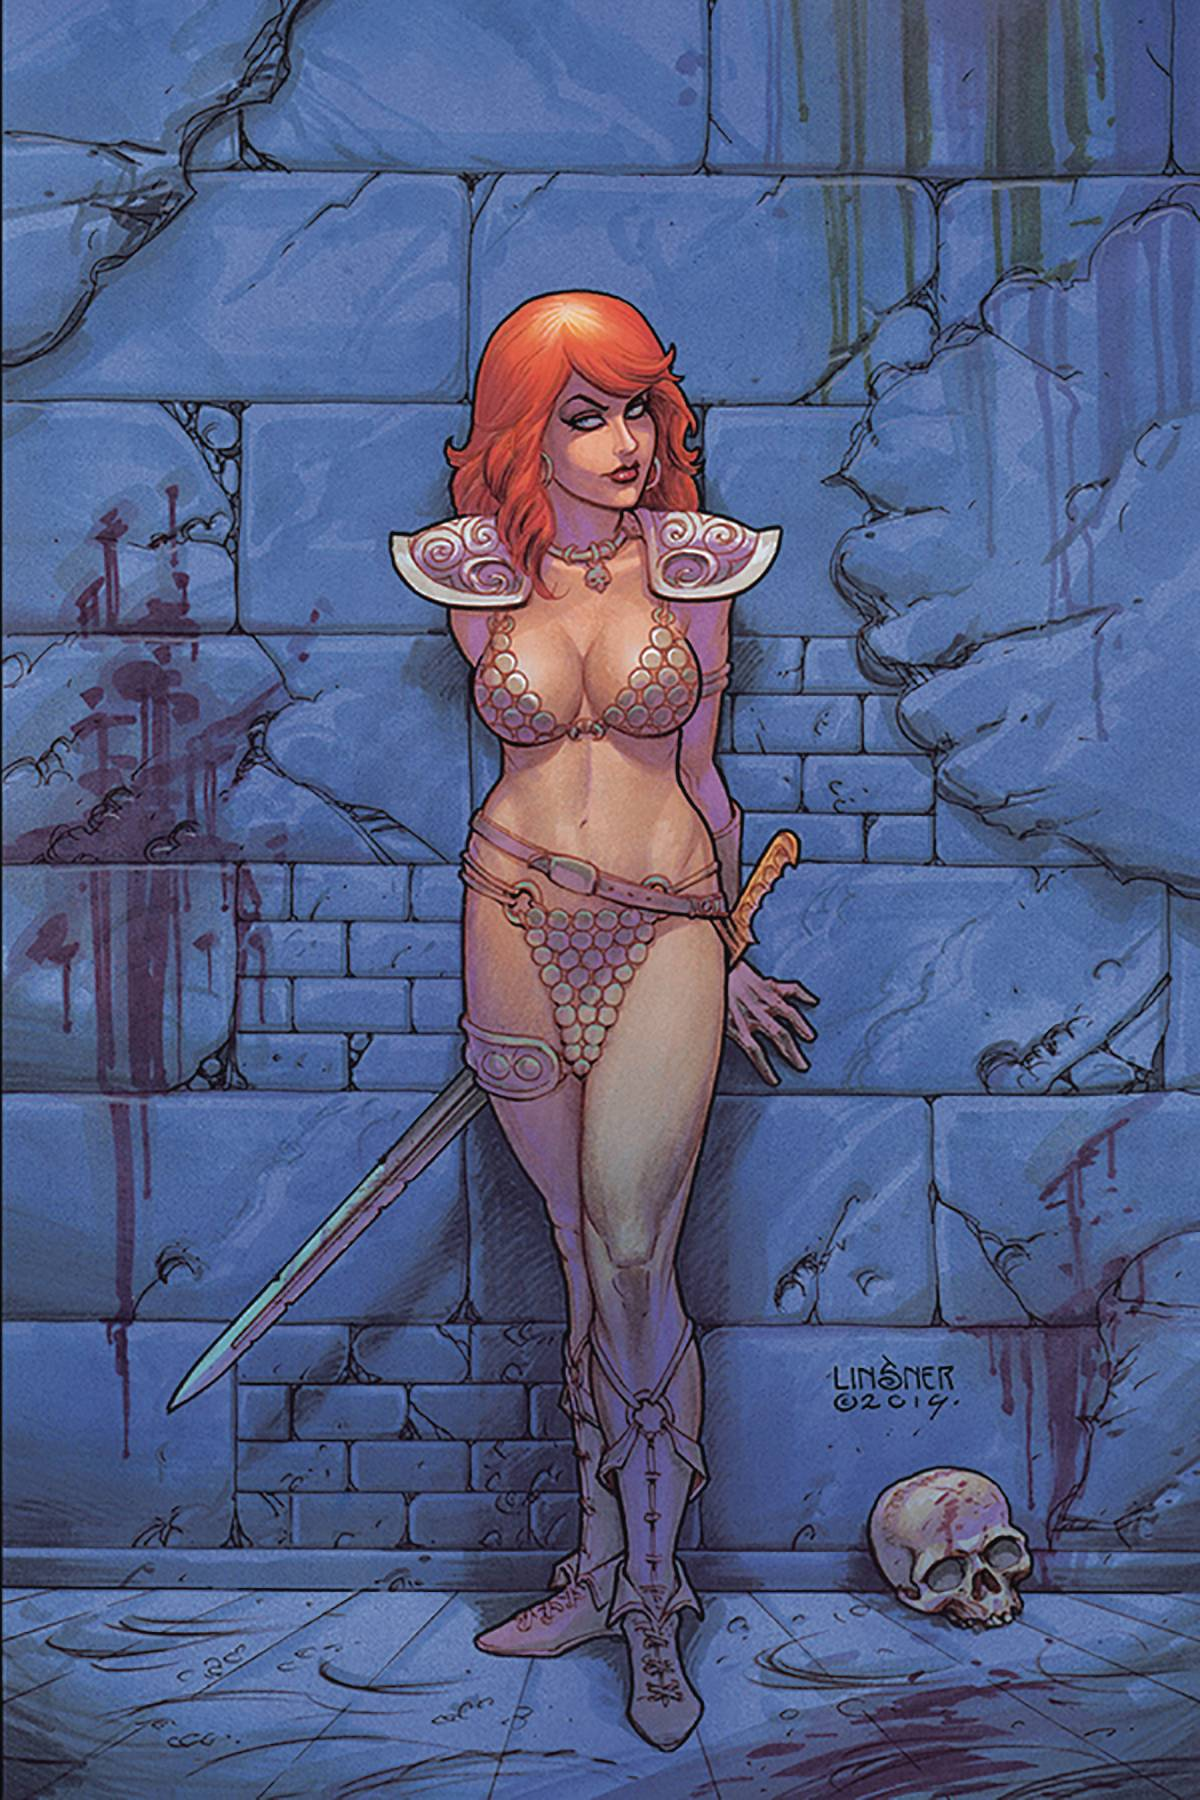 RED SONJA 9 LINSNER VIRGIN CVR.jpg